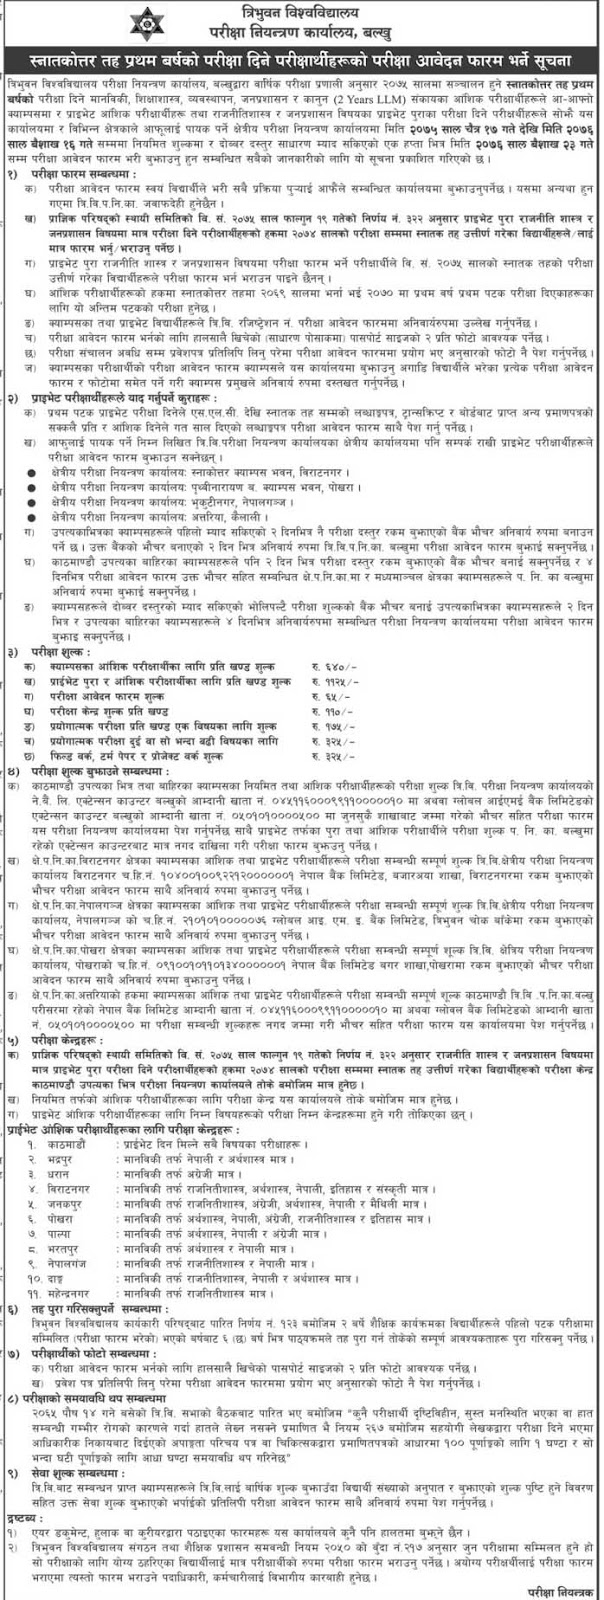 Masters level exam form fill up first year 2075